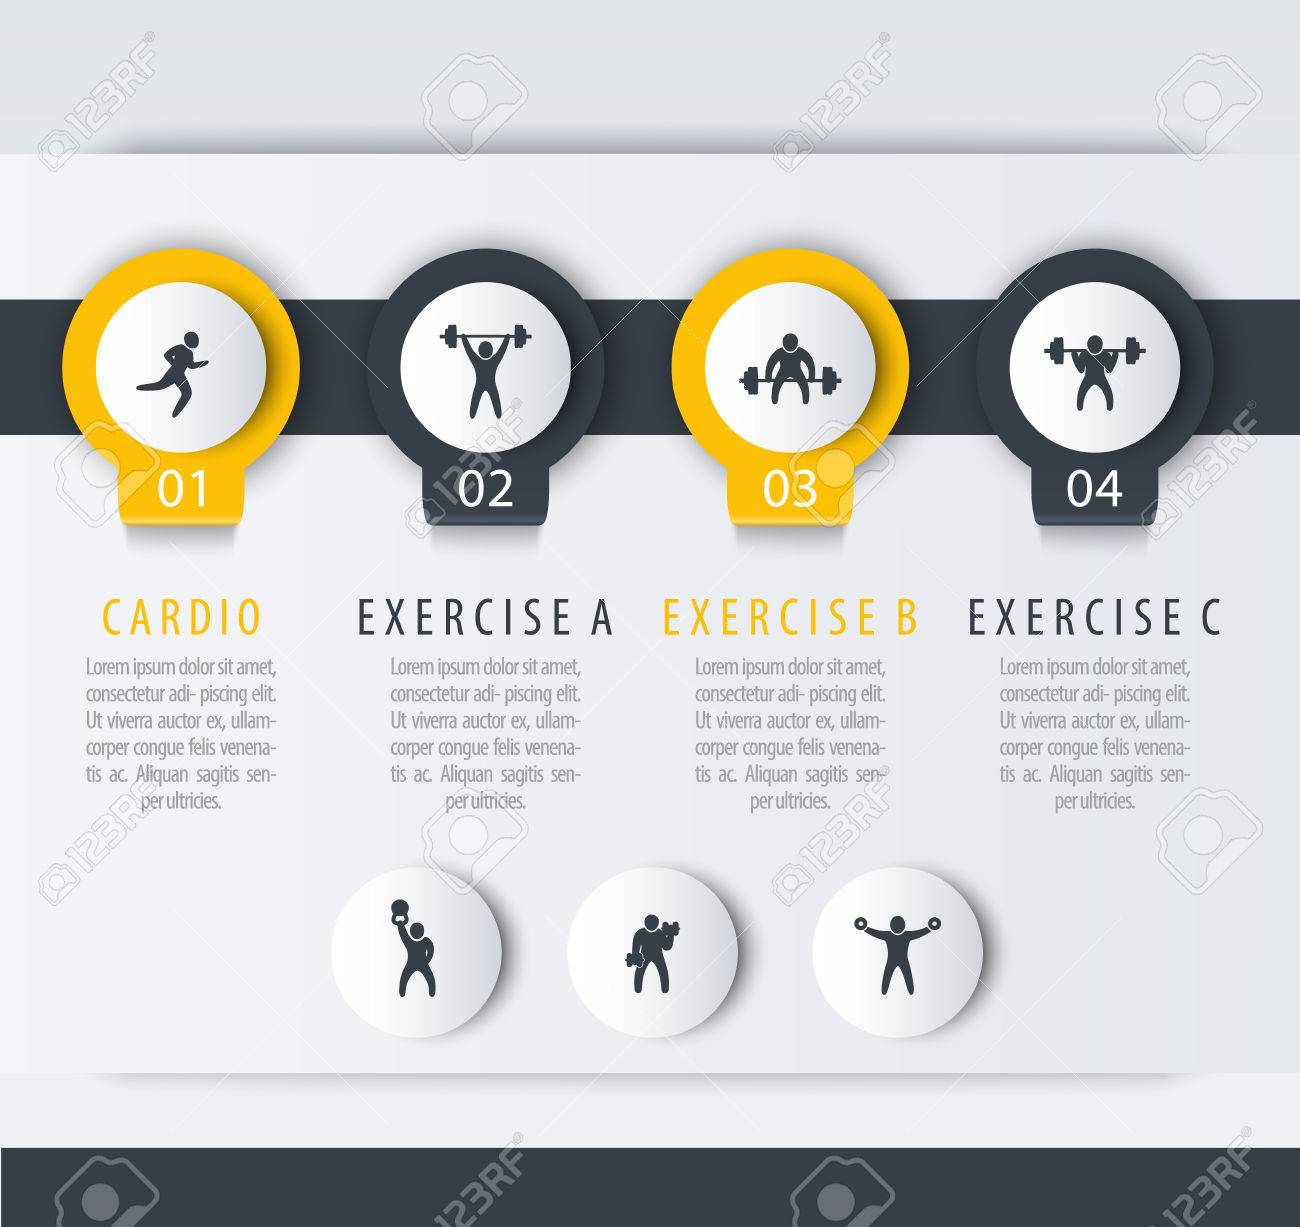 Gym Training Workout 4 Steps Infographic Template With Fitness Exercise Icons Stock Vector